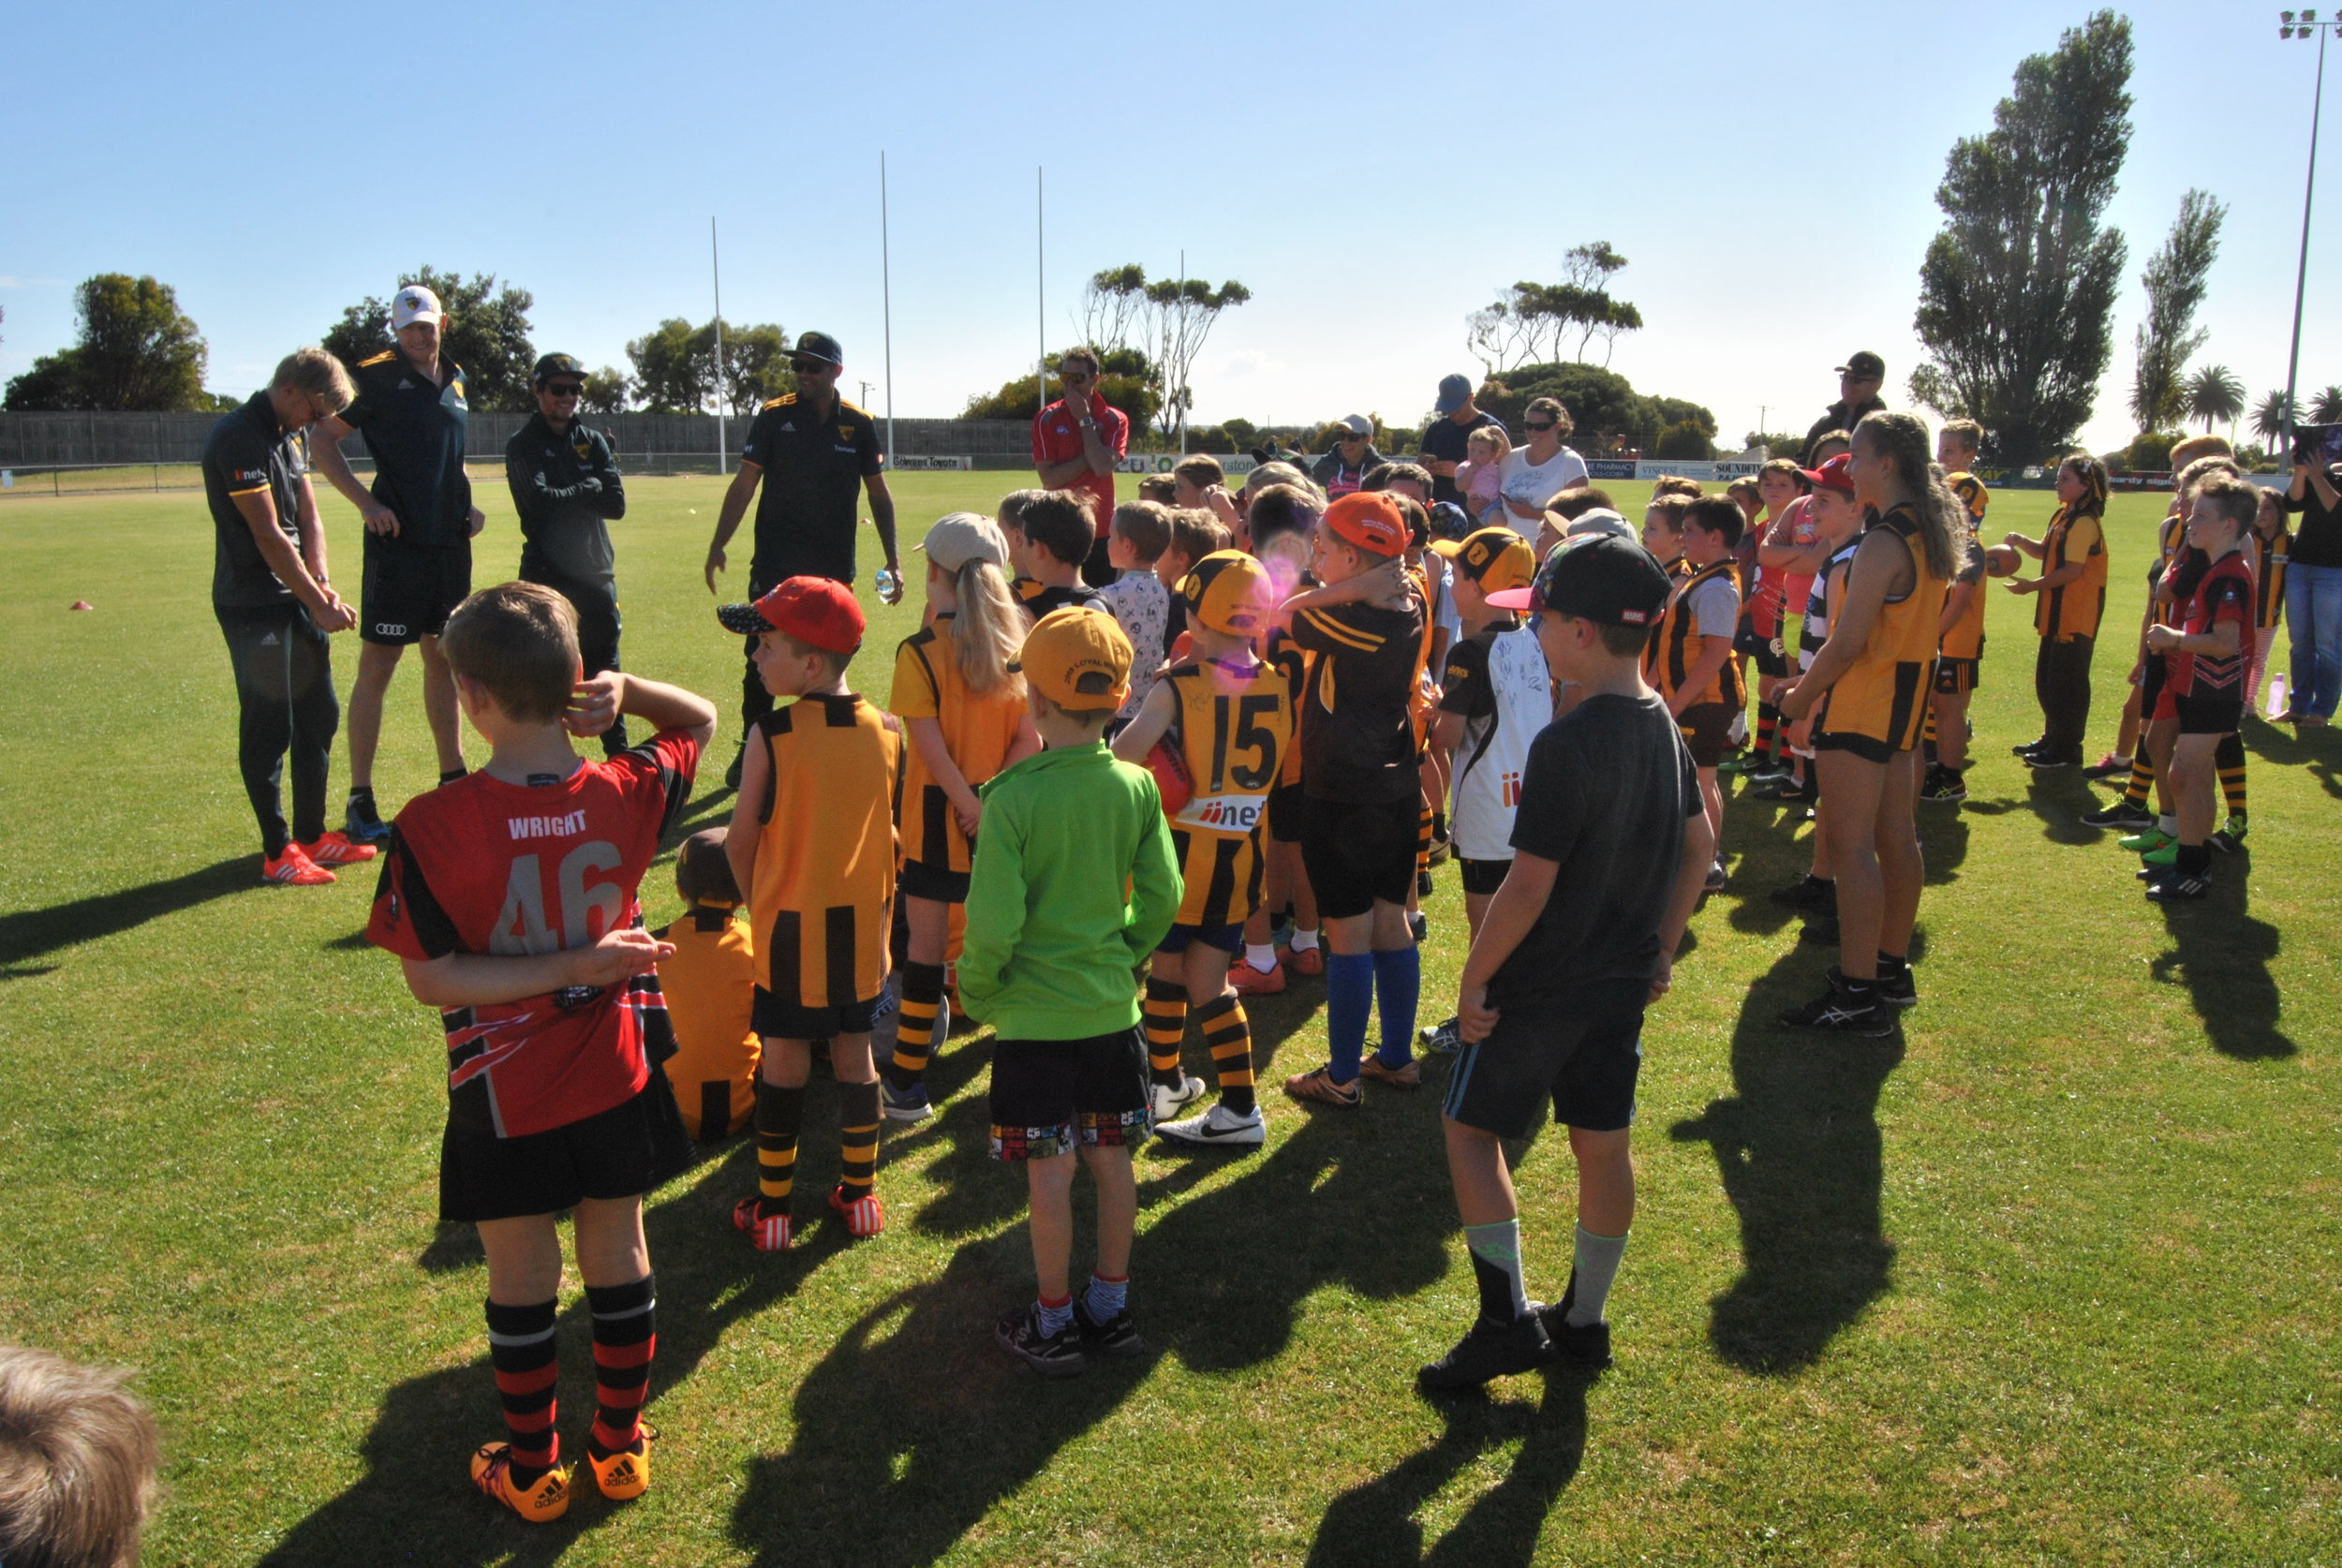 Ben McEvoy, Shaun Burgoyne, Will Langford and Kade Stewart speak with a group of AusKickers.